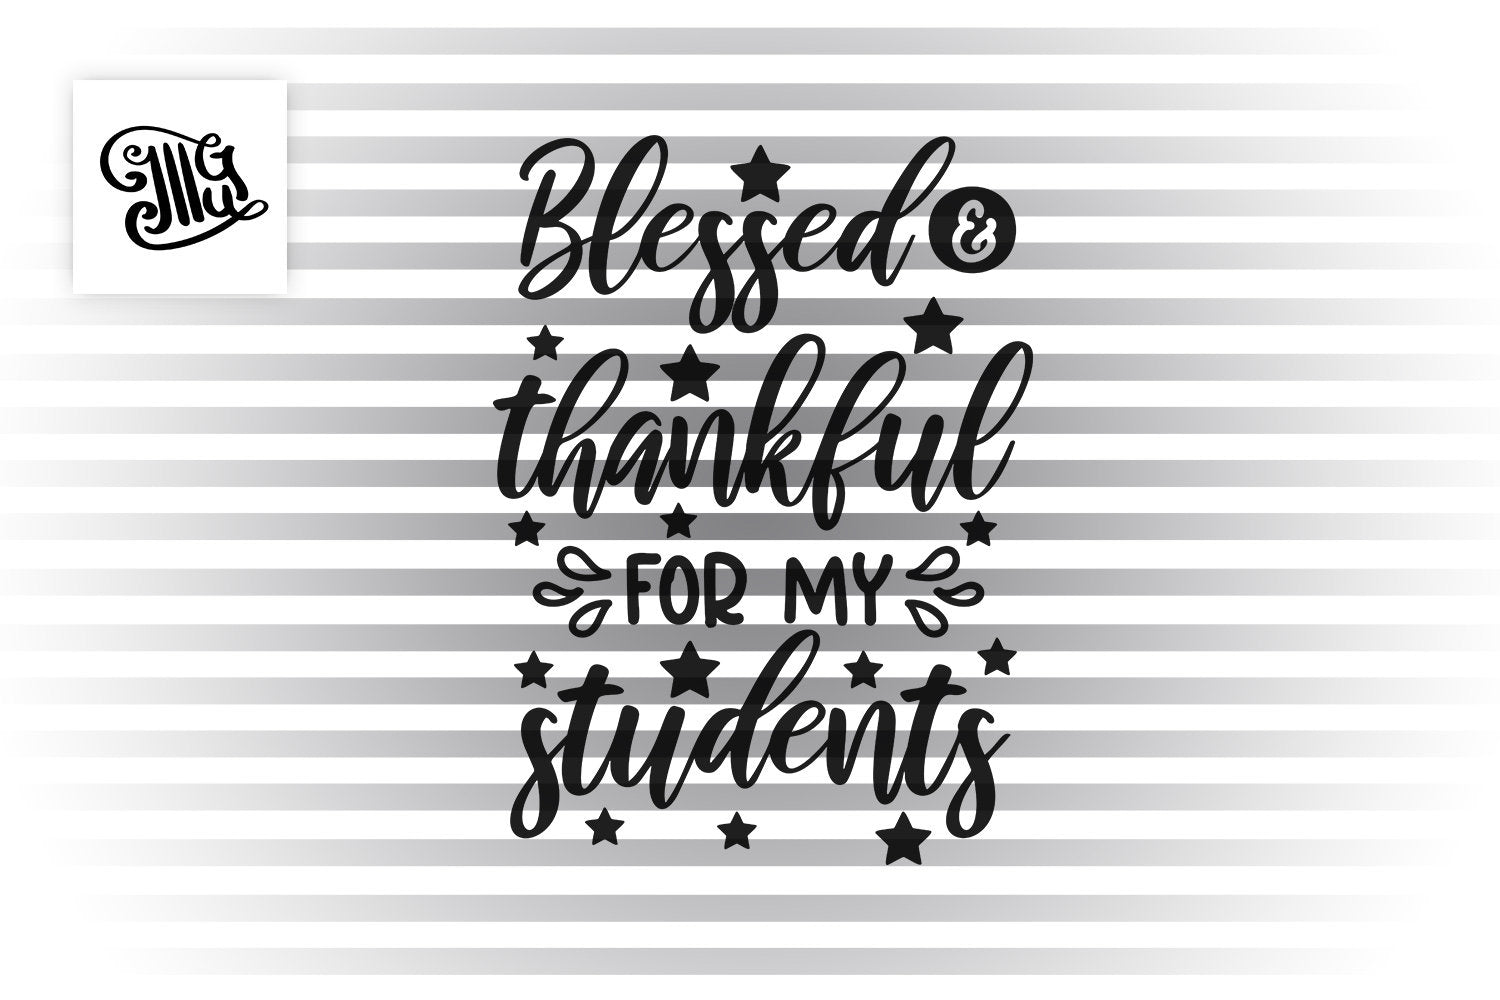 Blessed and thankful for my students svg, teacher svg, teacher shirt svg, blessed teacher svg, thankful teacher svg, kindergarten svg,-by Illustrator Guru